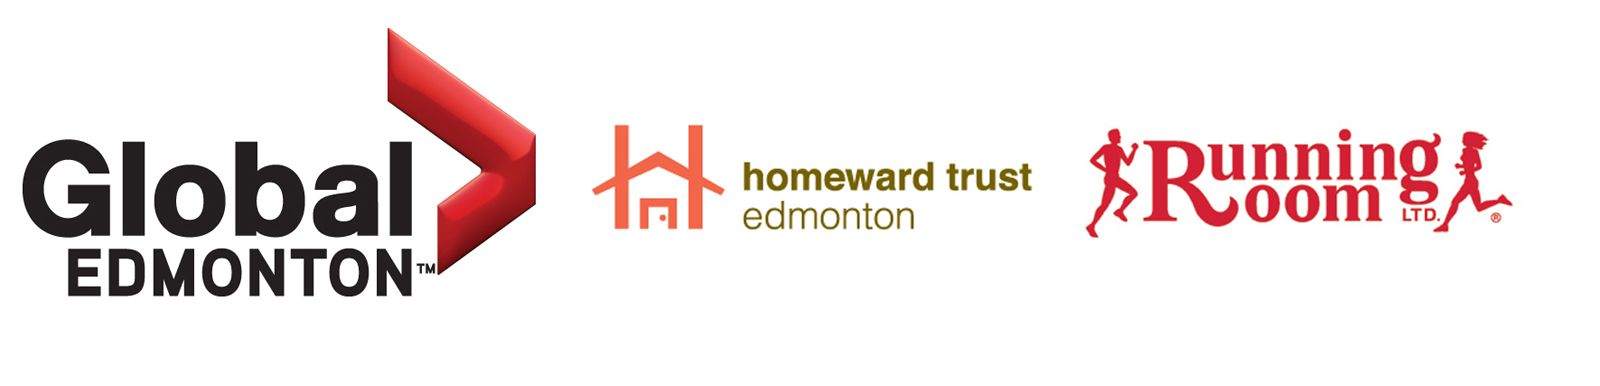 Homeward Sponsors2019